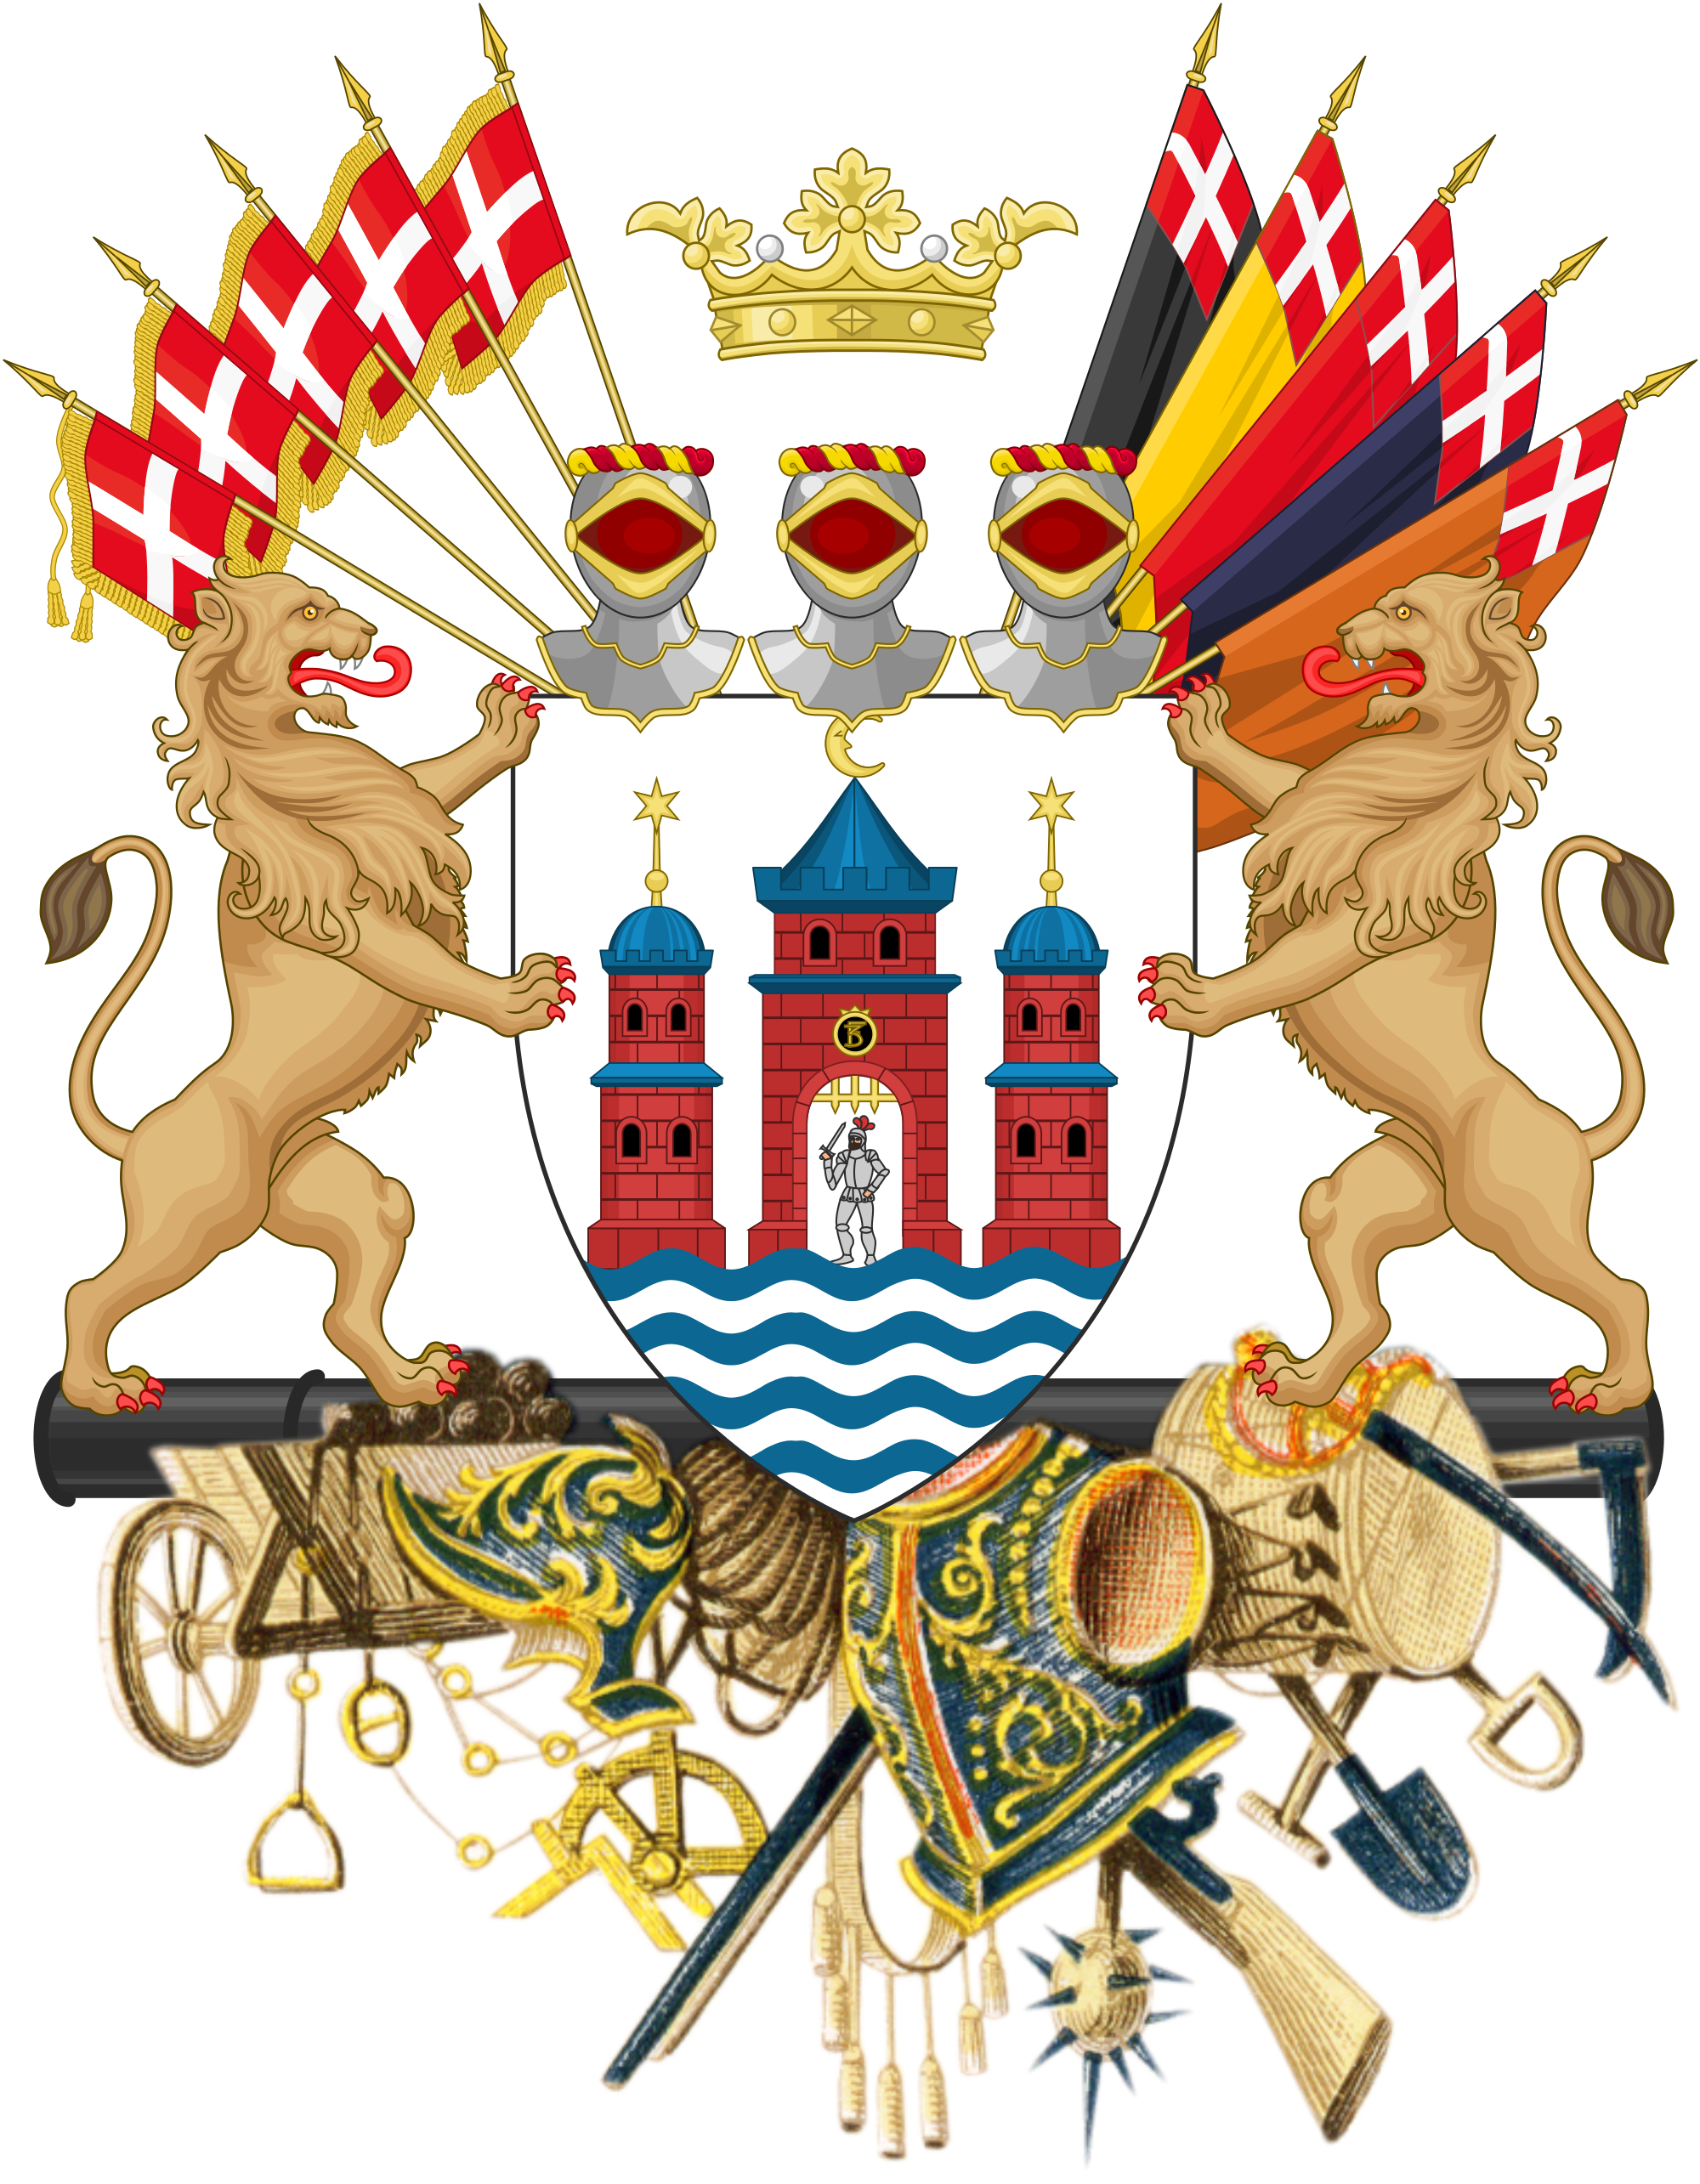 Dsp coat of arms vector png. User chumwa ogrebot potential